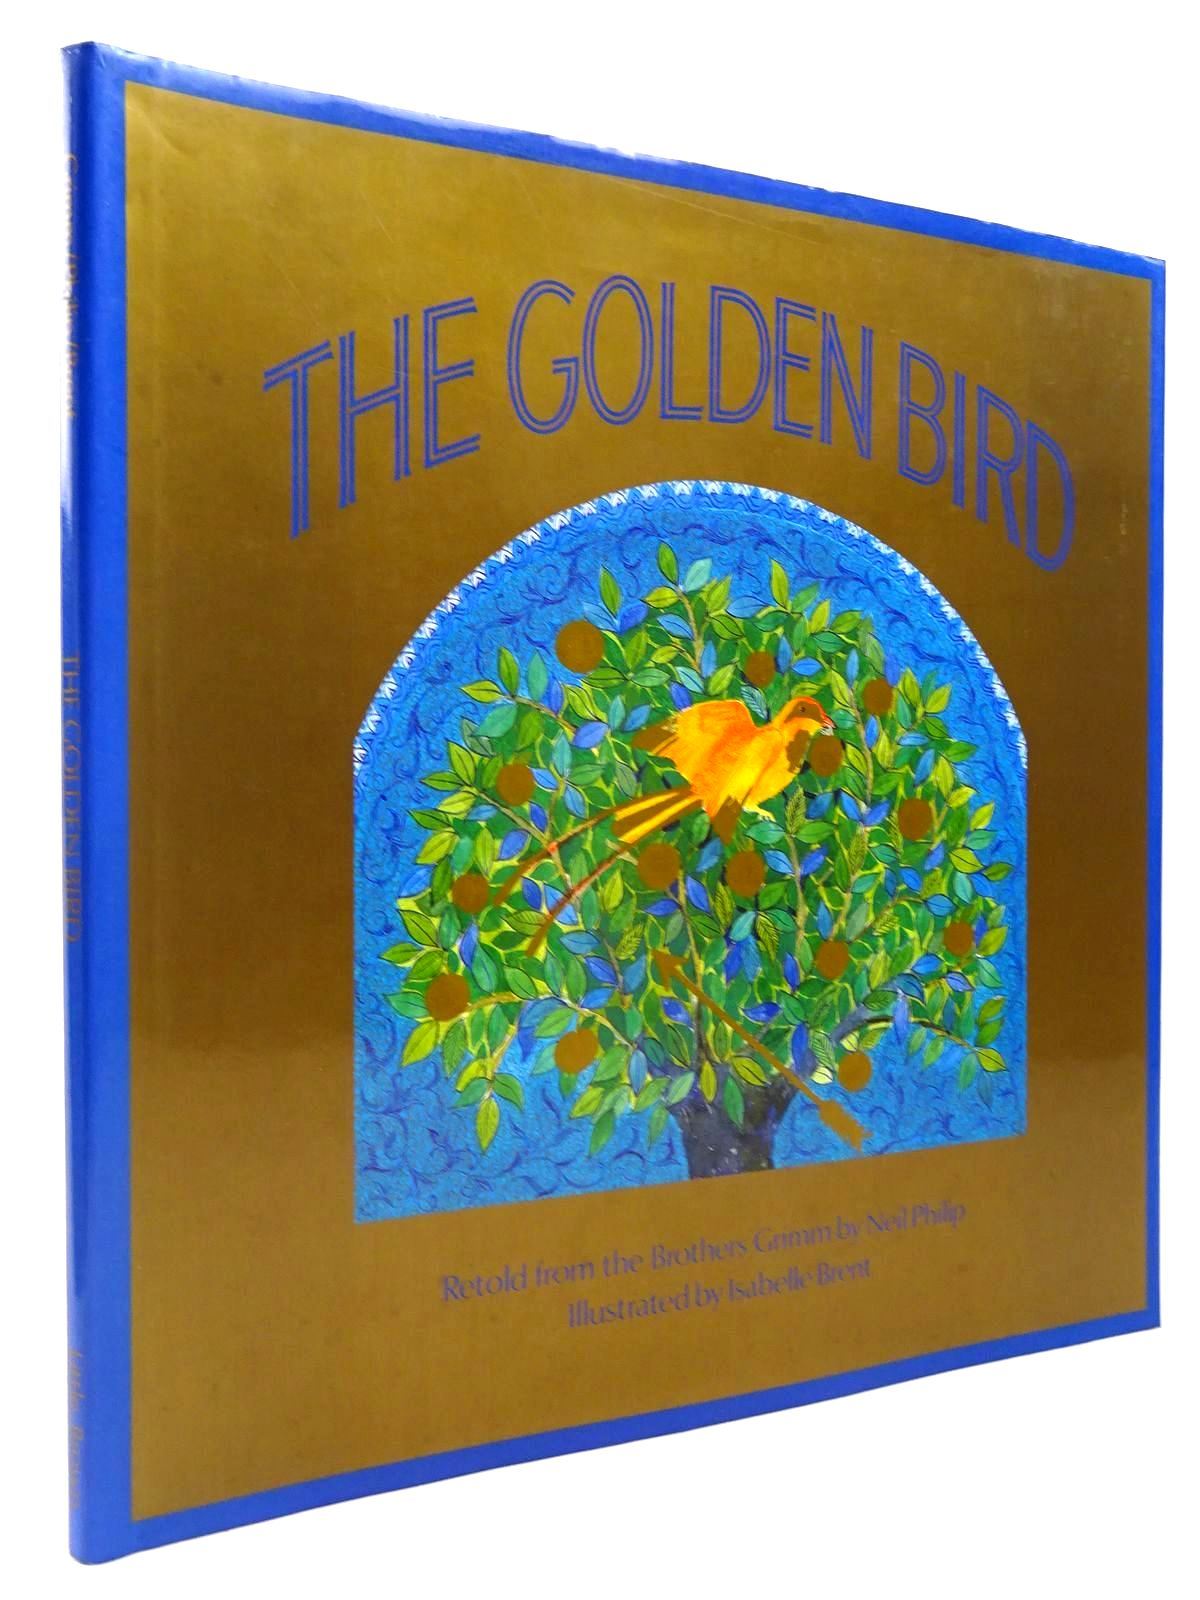 Photo of THE GOLDEN BIRD written by Grimm, Brothers Philip, Neil illustrated by Brent, Isabelle published by Little, Brown and Company (STOCK CODE: 2130702)  for sale by Stella & Rose's Books